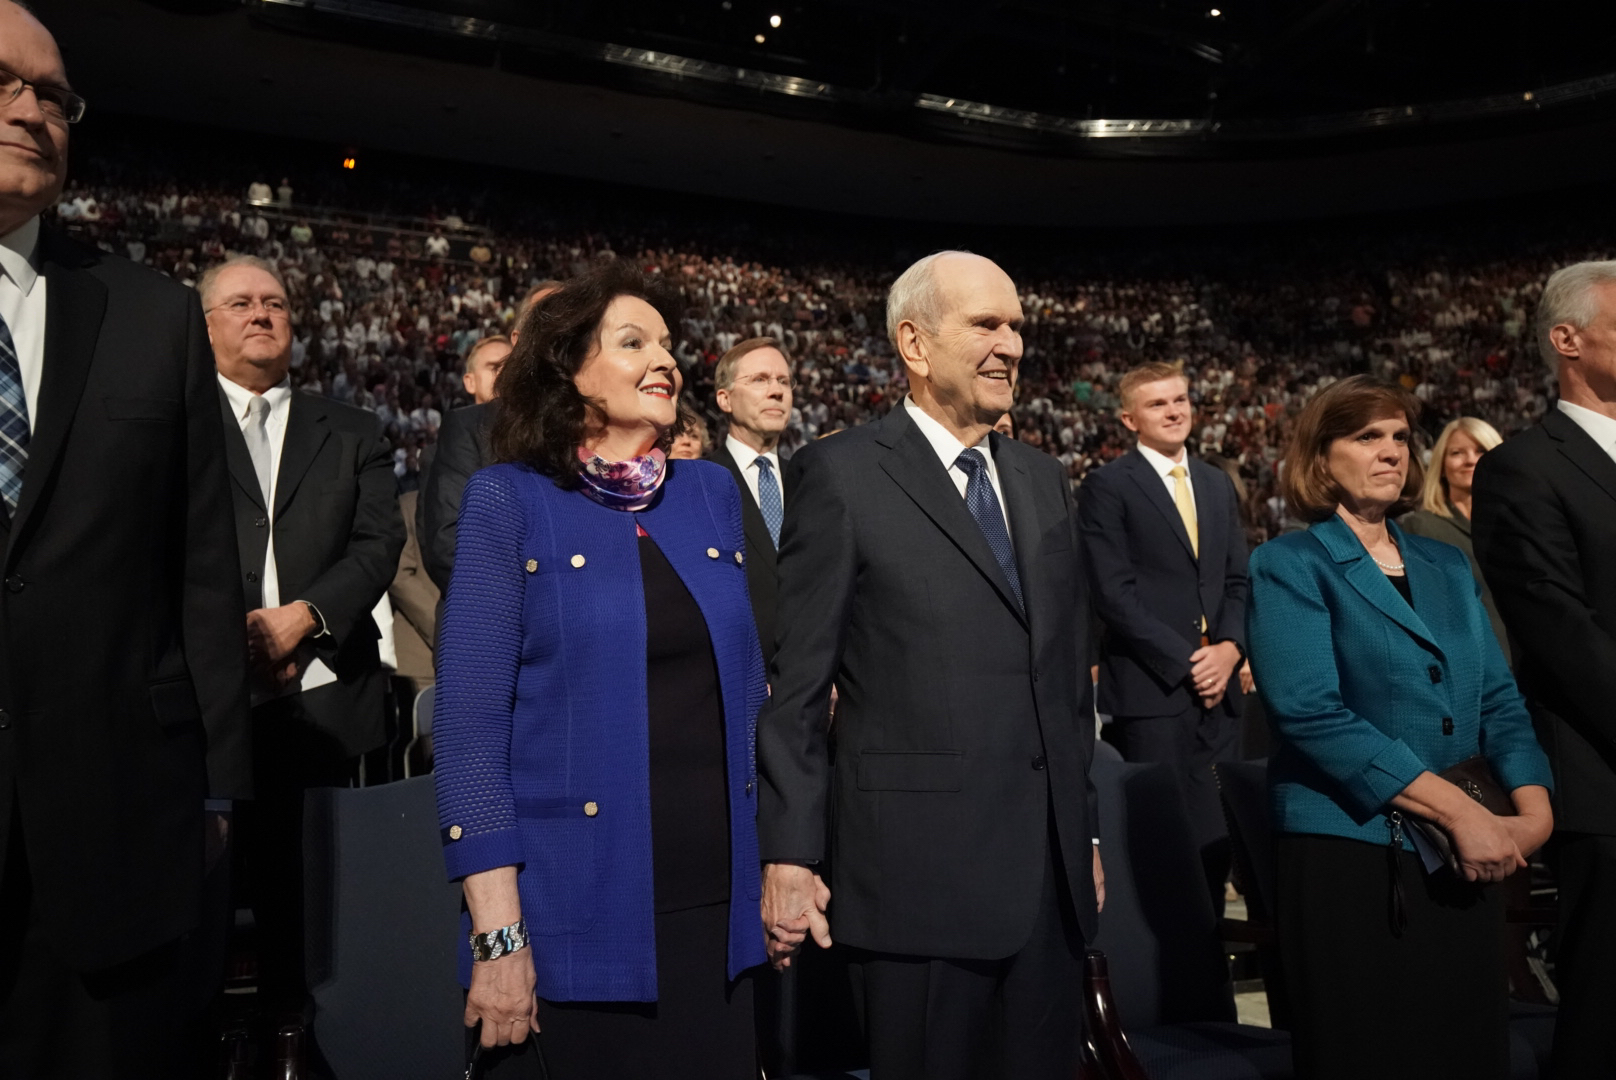 President Russell M. Nelson of The Church of Jesus Christ of Latter-day Saints and his wife Sister Wendy Nelson stands before speaking at a devotional at Brigham Young University in Provo on Tuesday, Sept. 17, 2019.